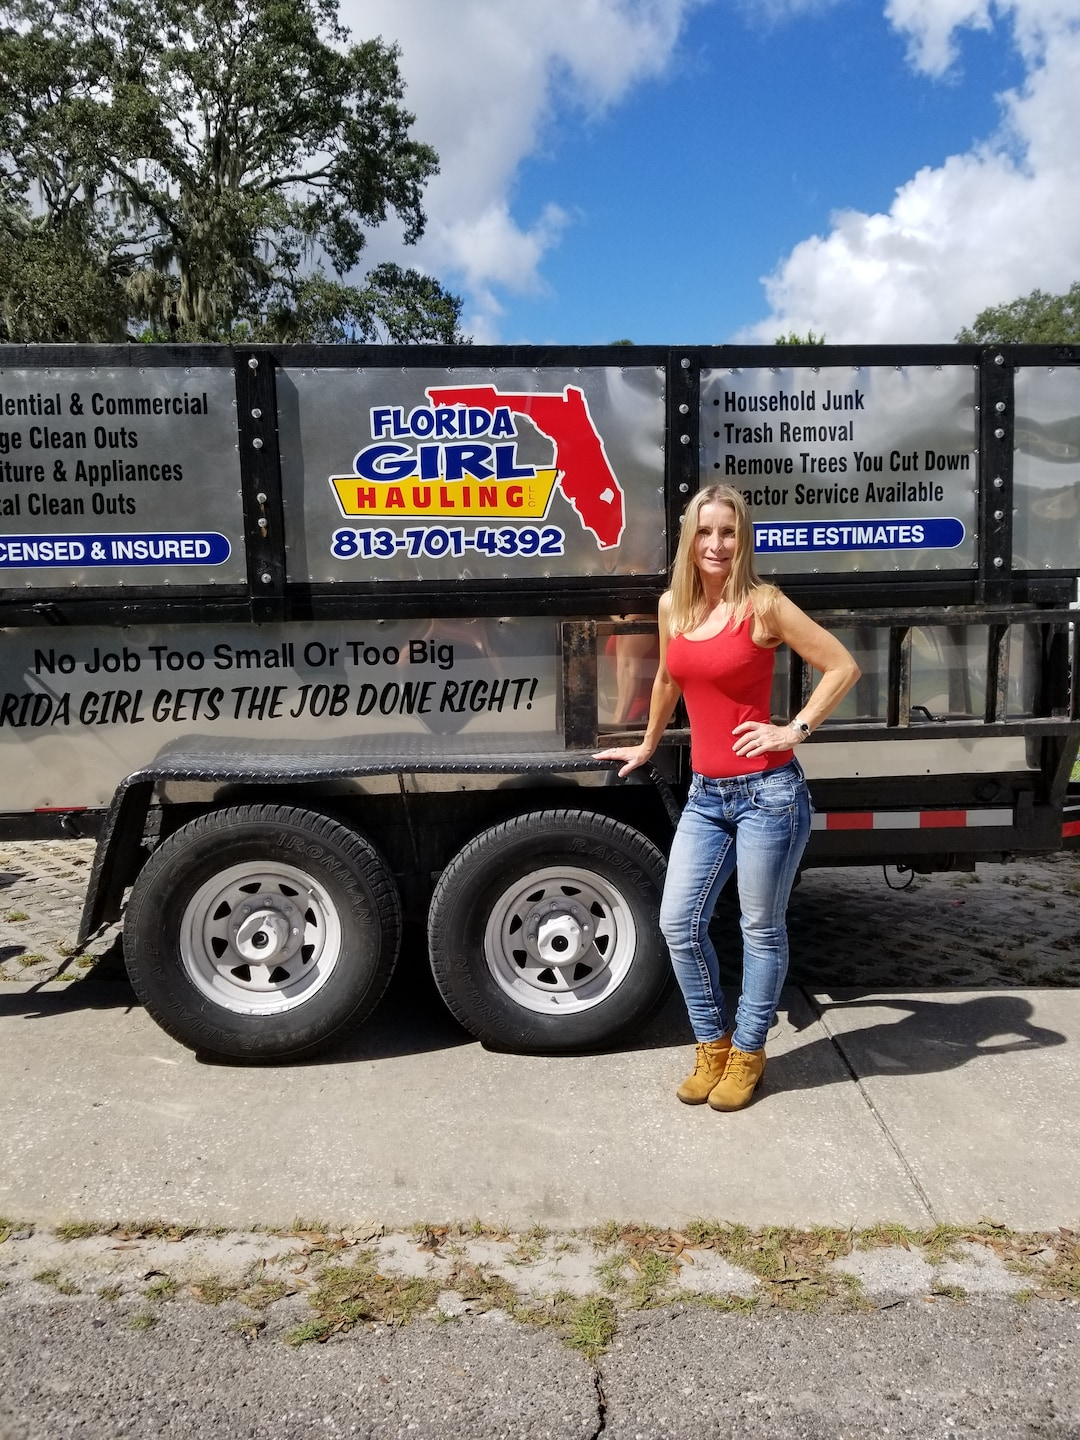 Florida Girl Hauling